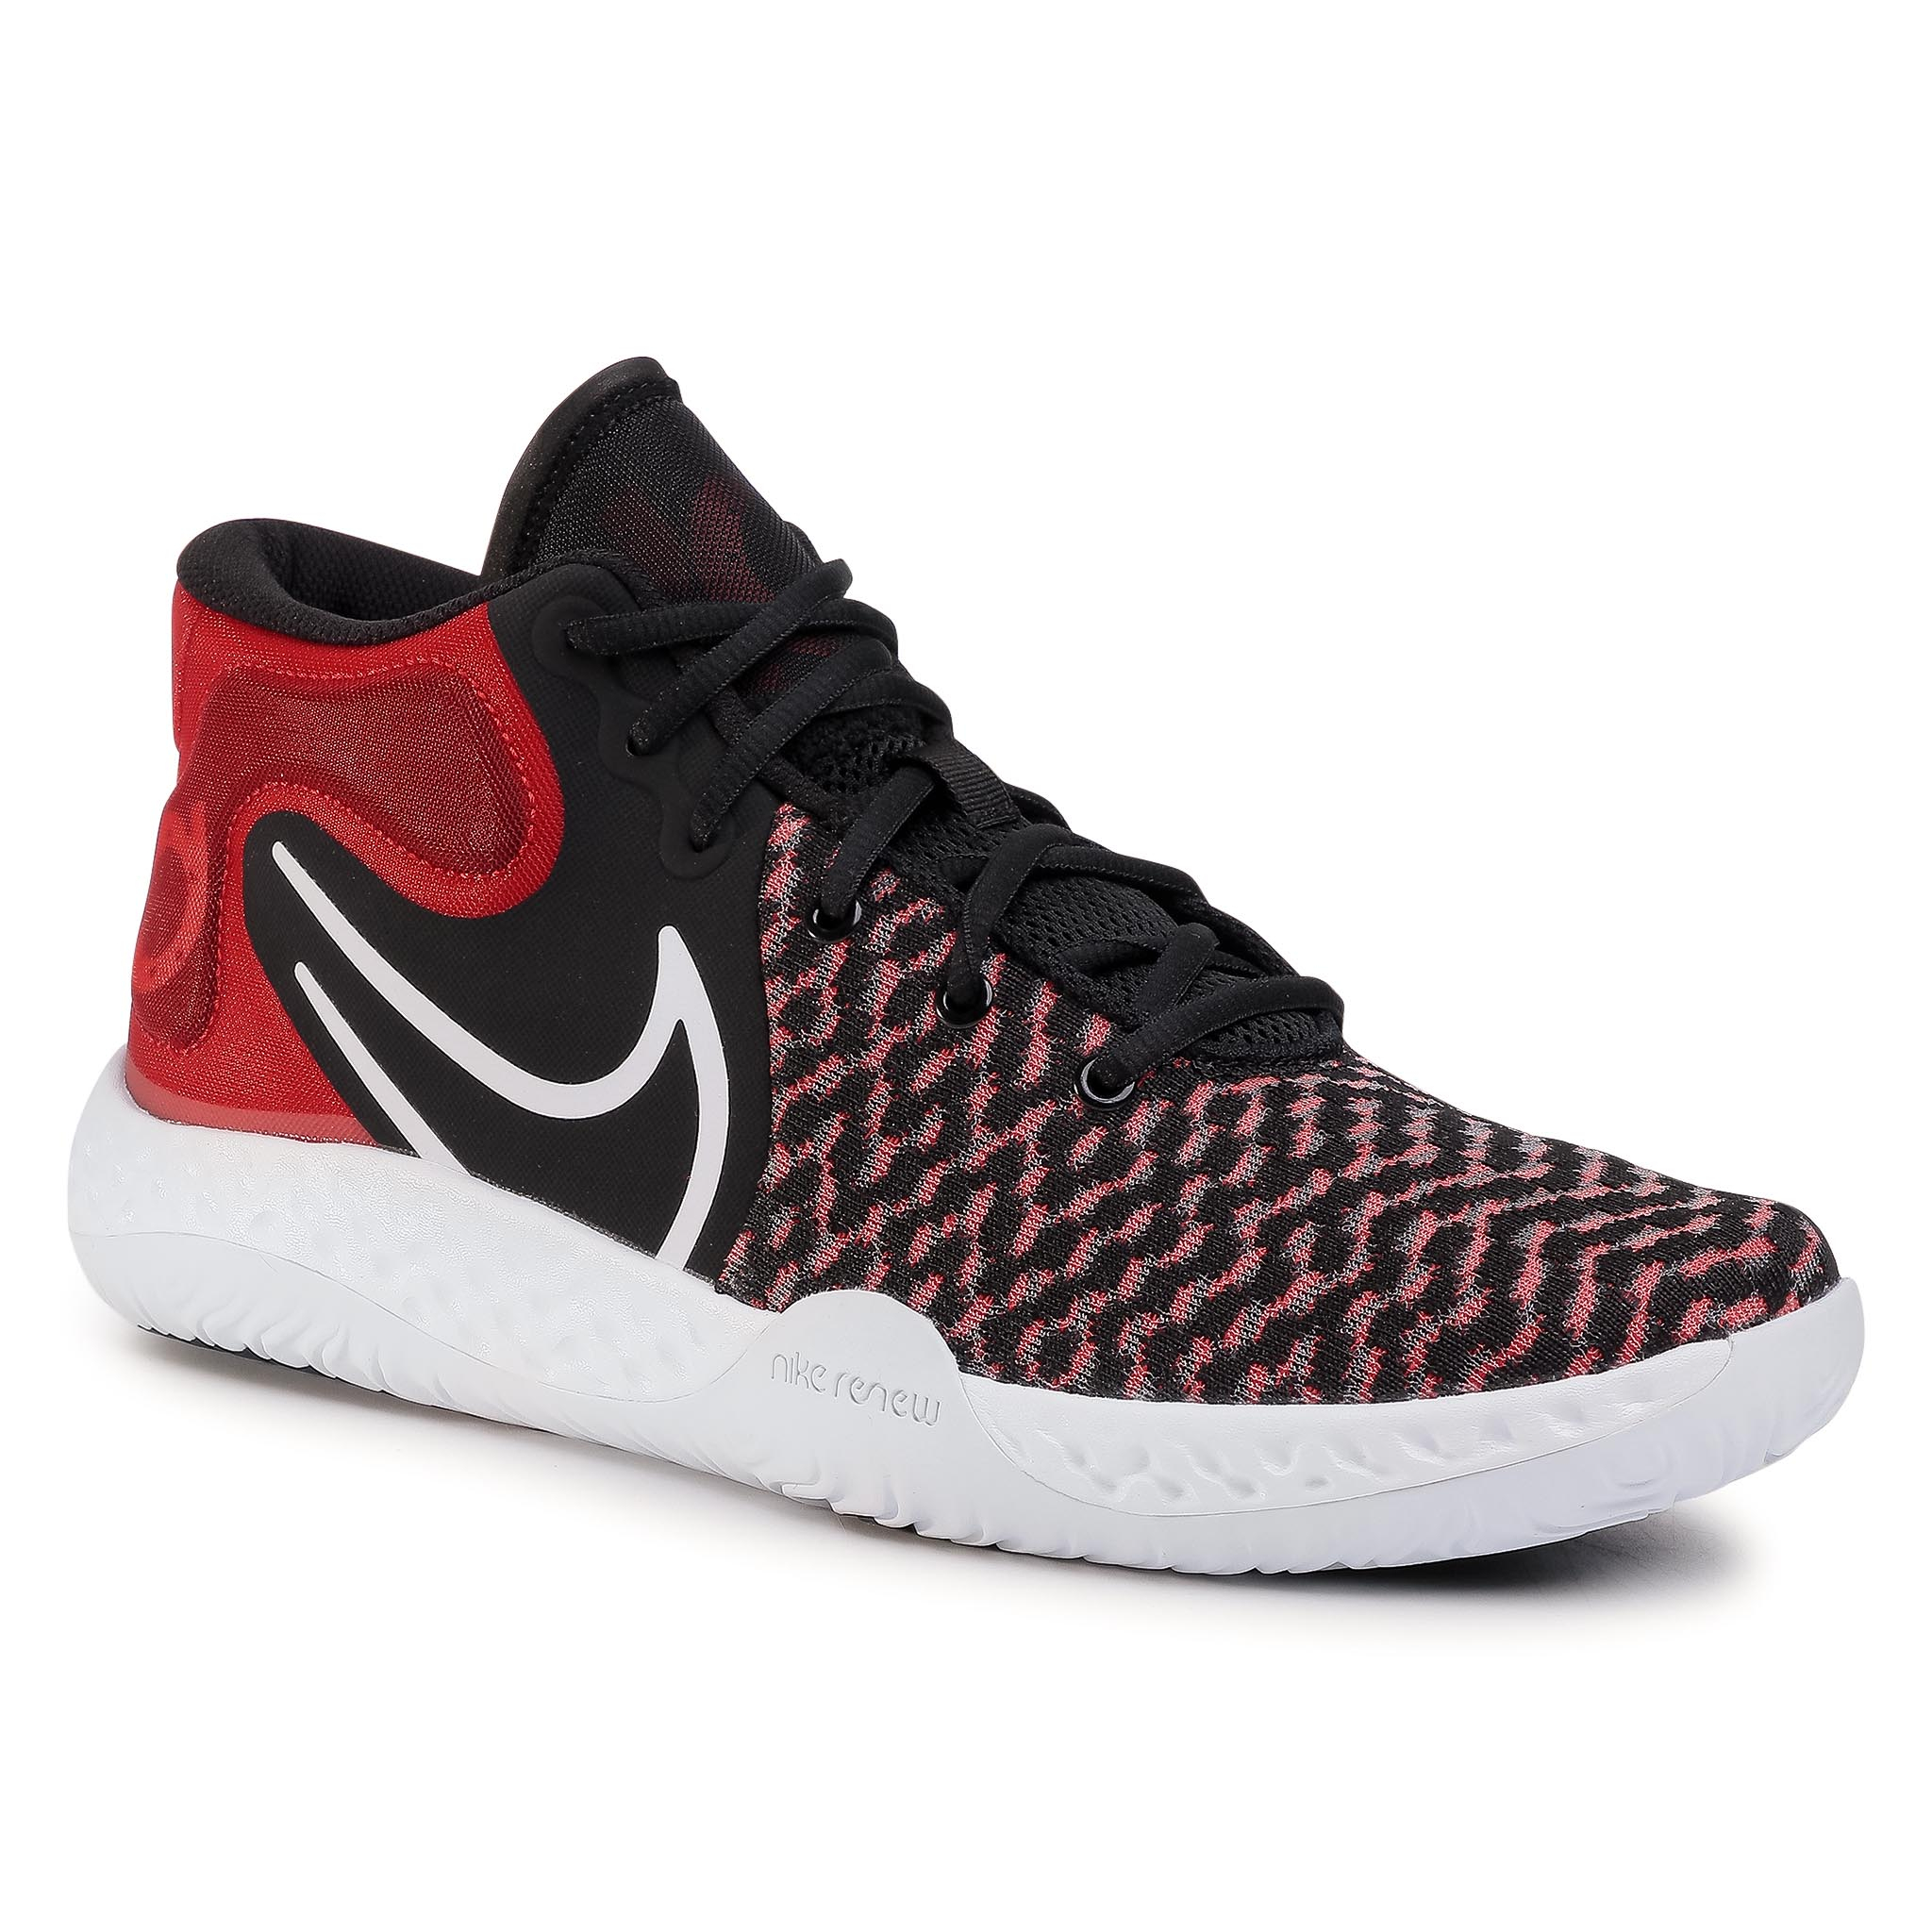 Pantofi Nike - Kd Trey 5 Viii Ck2090 002 Black/White/University Red imagine epantofi.ro 2021